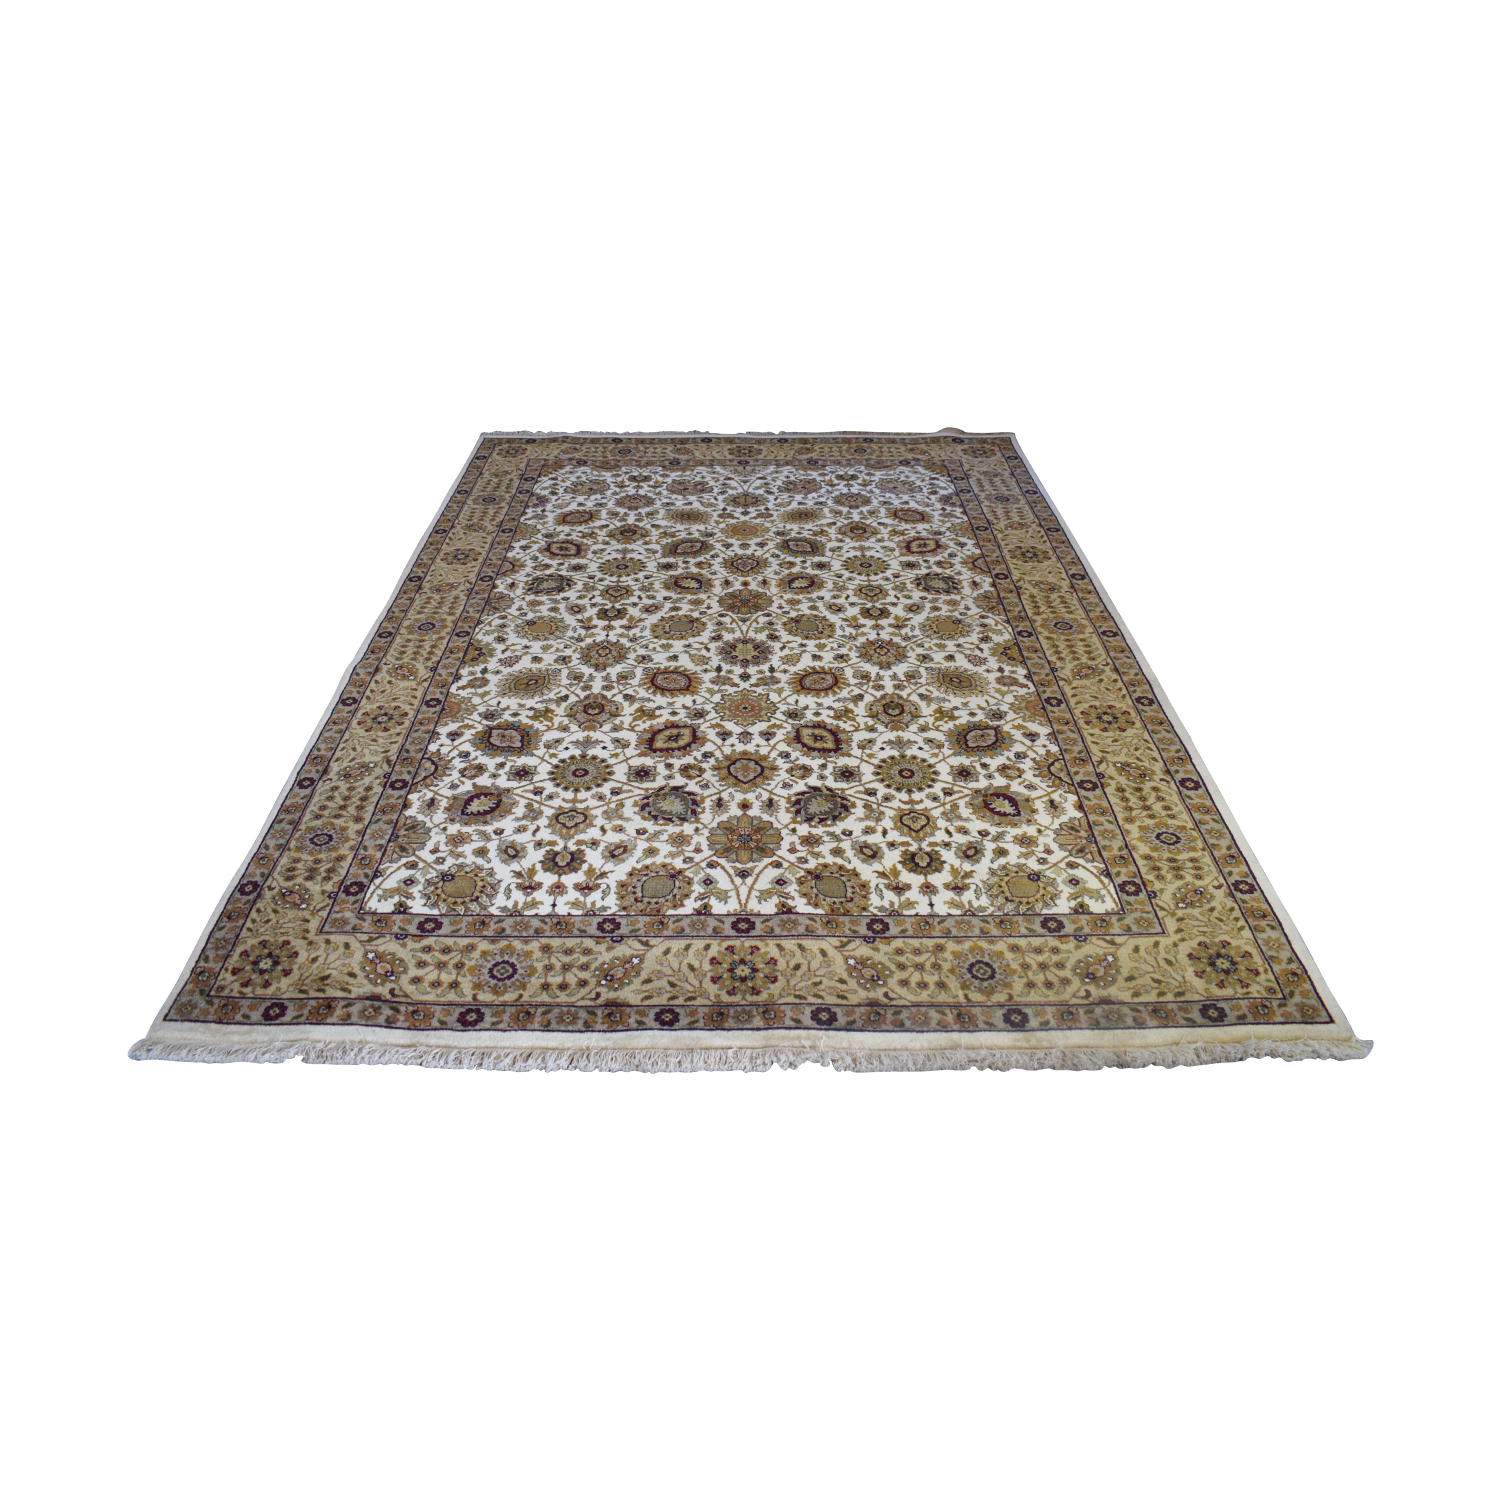 Abu Rugs and Home Abu Rugs and Home Beige Floral Oriental Rug dimensions